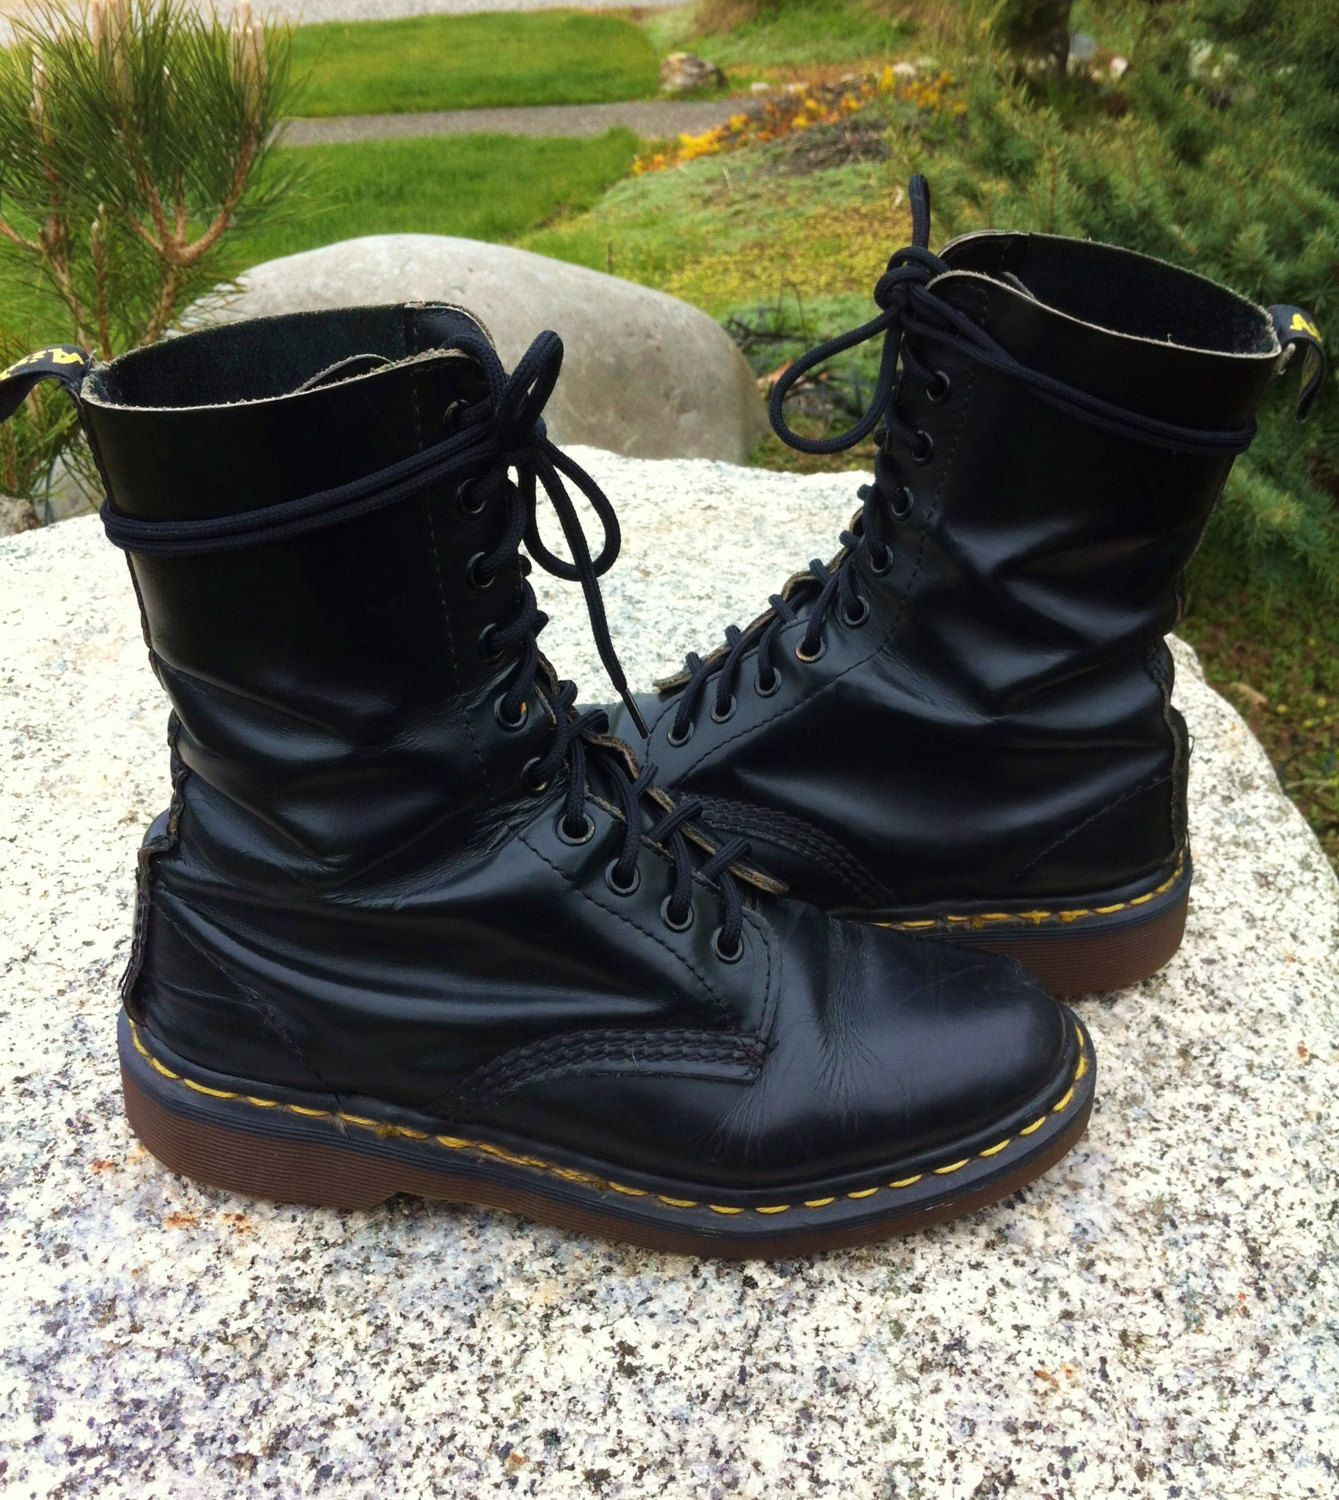 5c8c26b2a114 Soooo tempting :) Vintage 80s 90s Doc Marten Tall Black Leather Grunge  Boots 10 Eye Made in England UK Size 5 Goth Glam Punk Combat. $65.00, via  Etsy.